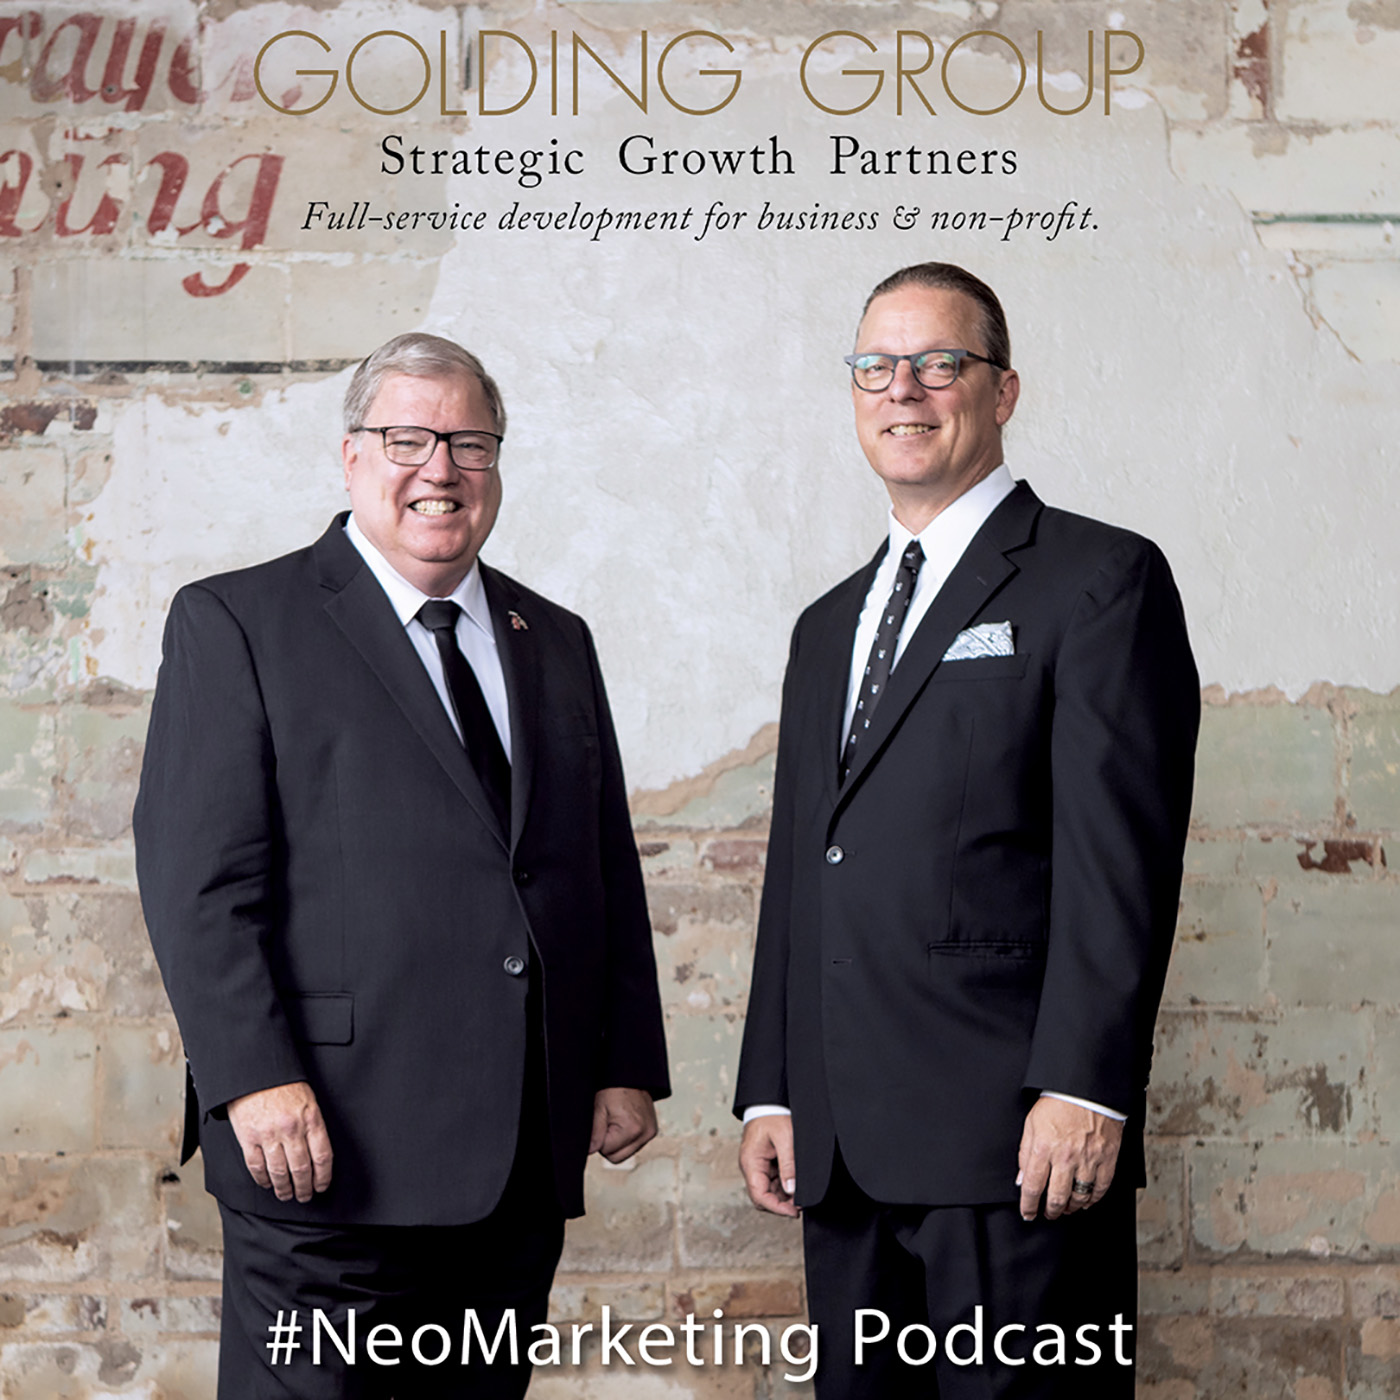 #NeoMarketing Podcast